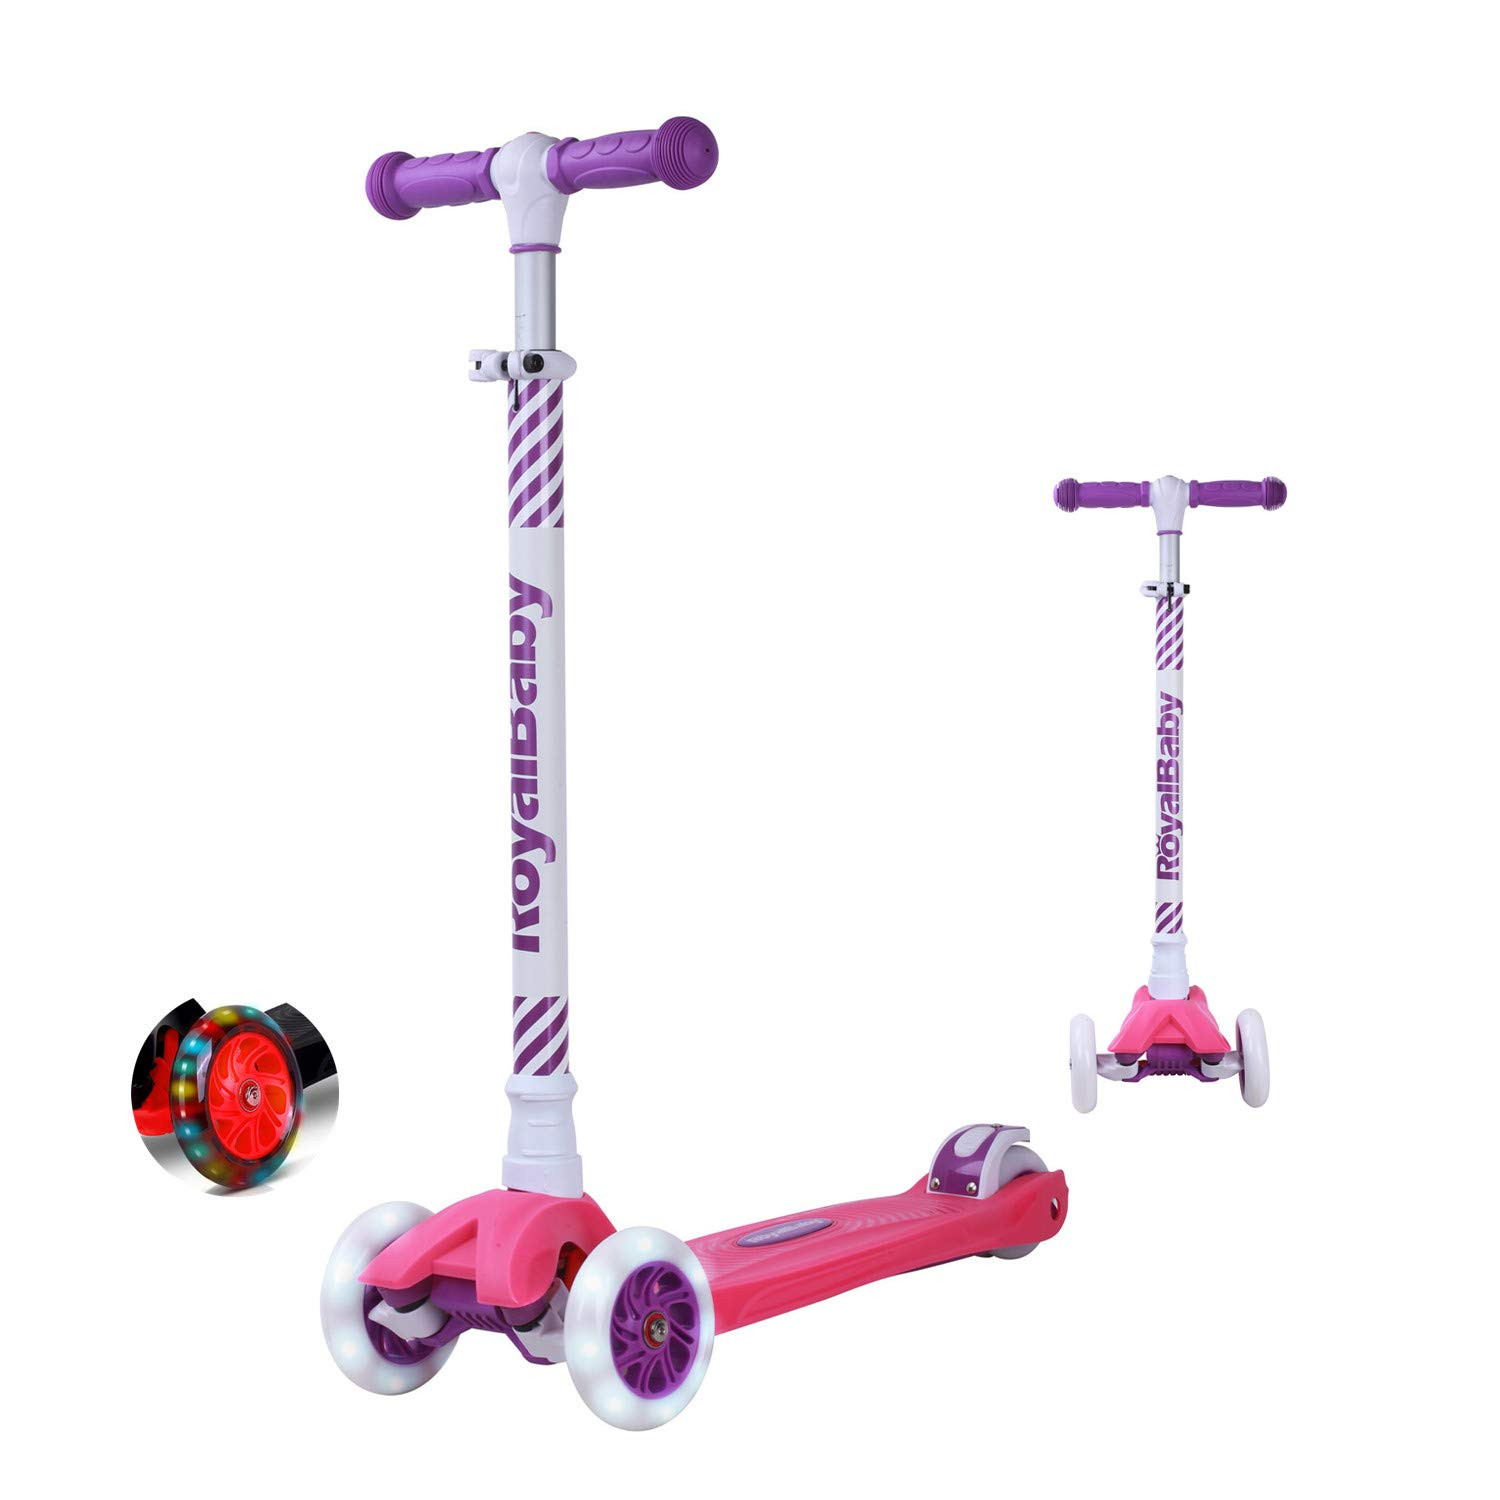 Royalbaby 3 Wheel Scooter (Saber) - Adjustable Height with Security Lock/Flashing Wheels/Lean to Turn/Durable Deck - Gift for Children ROYAL BABY